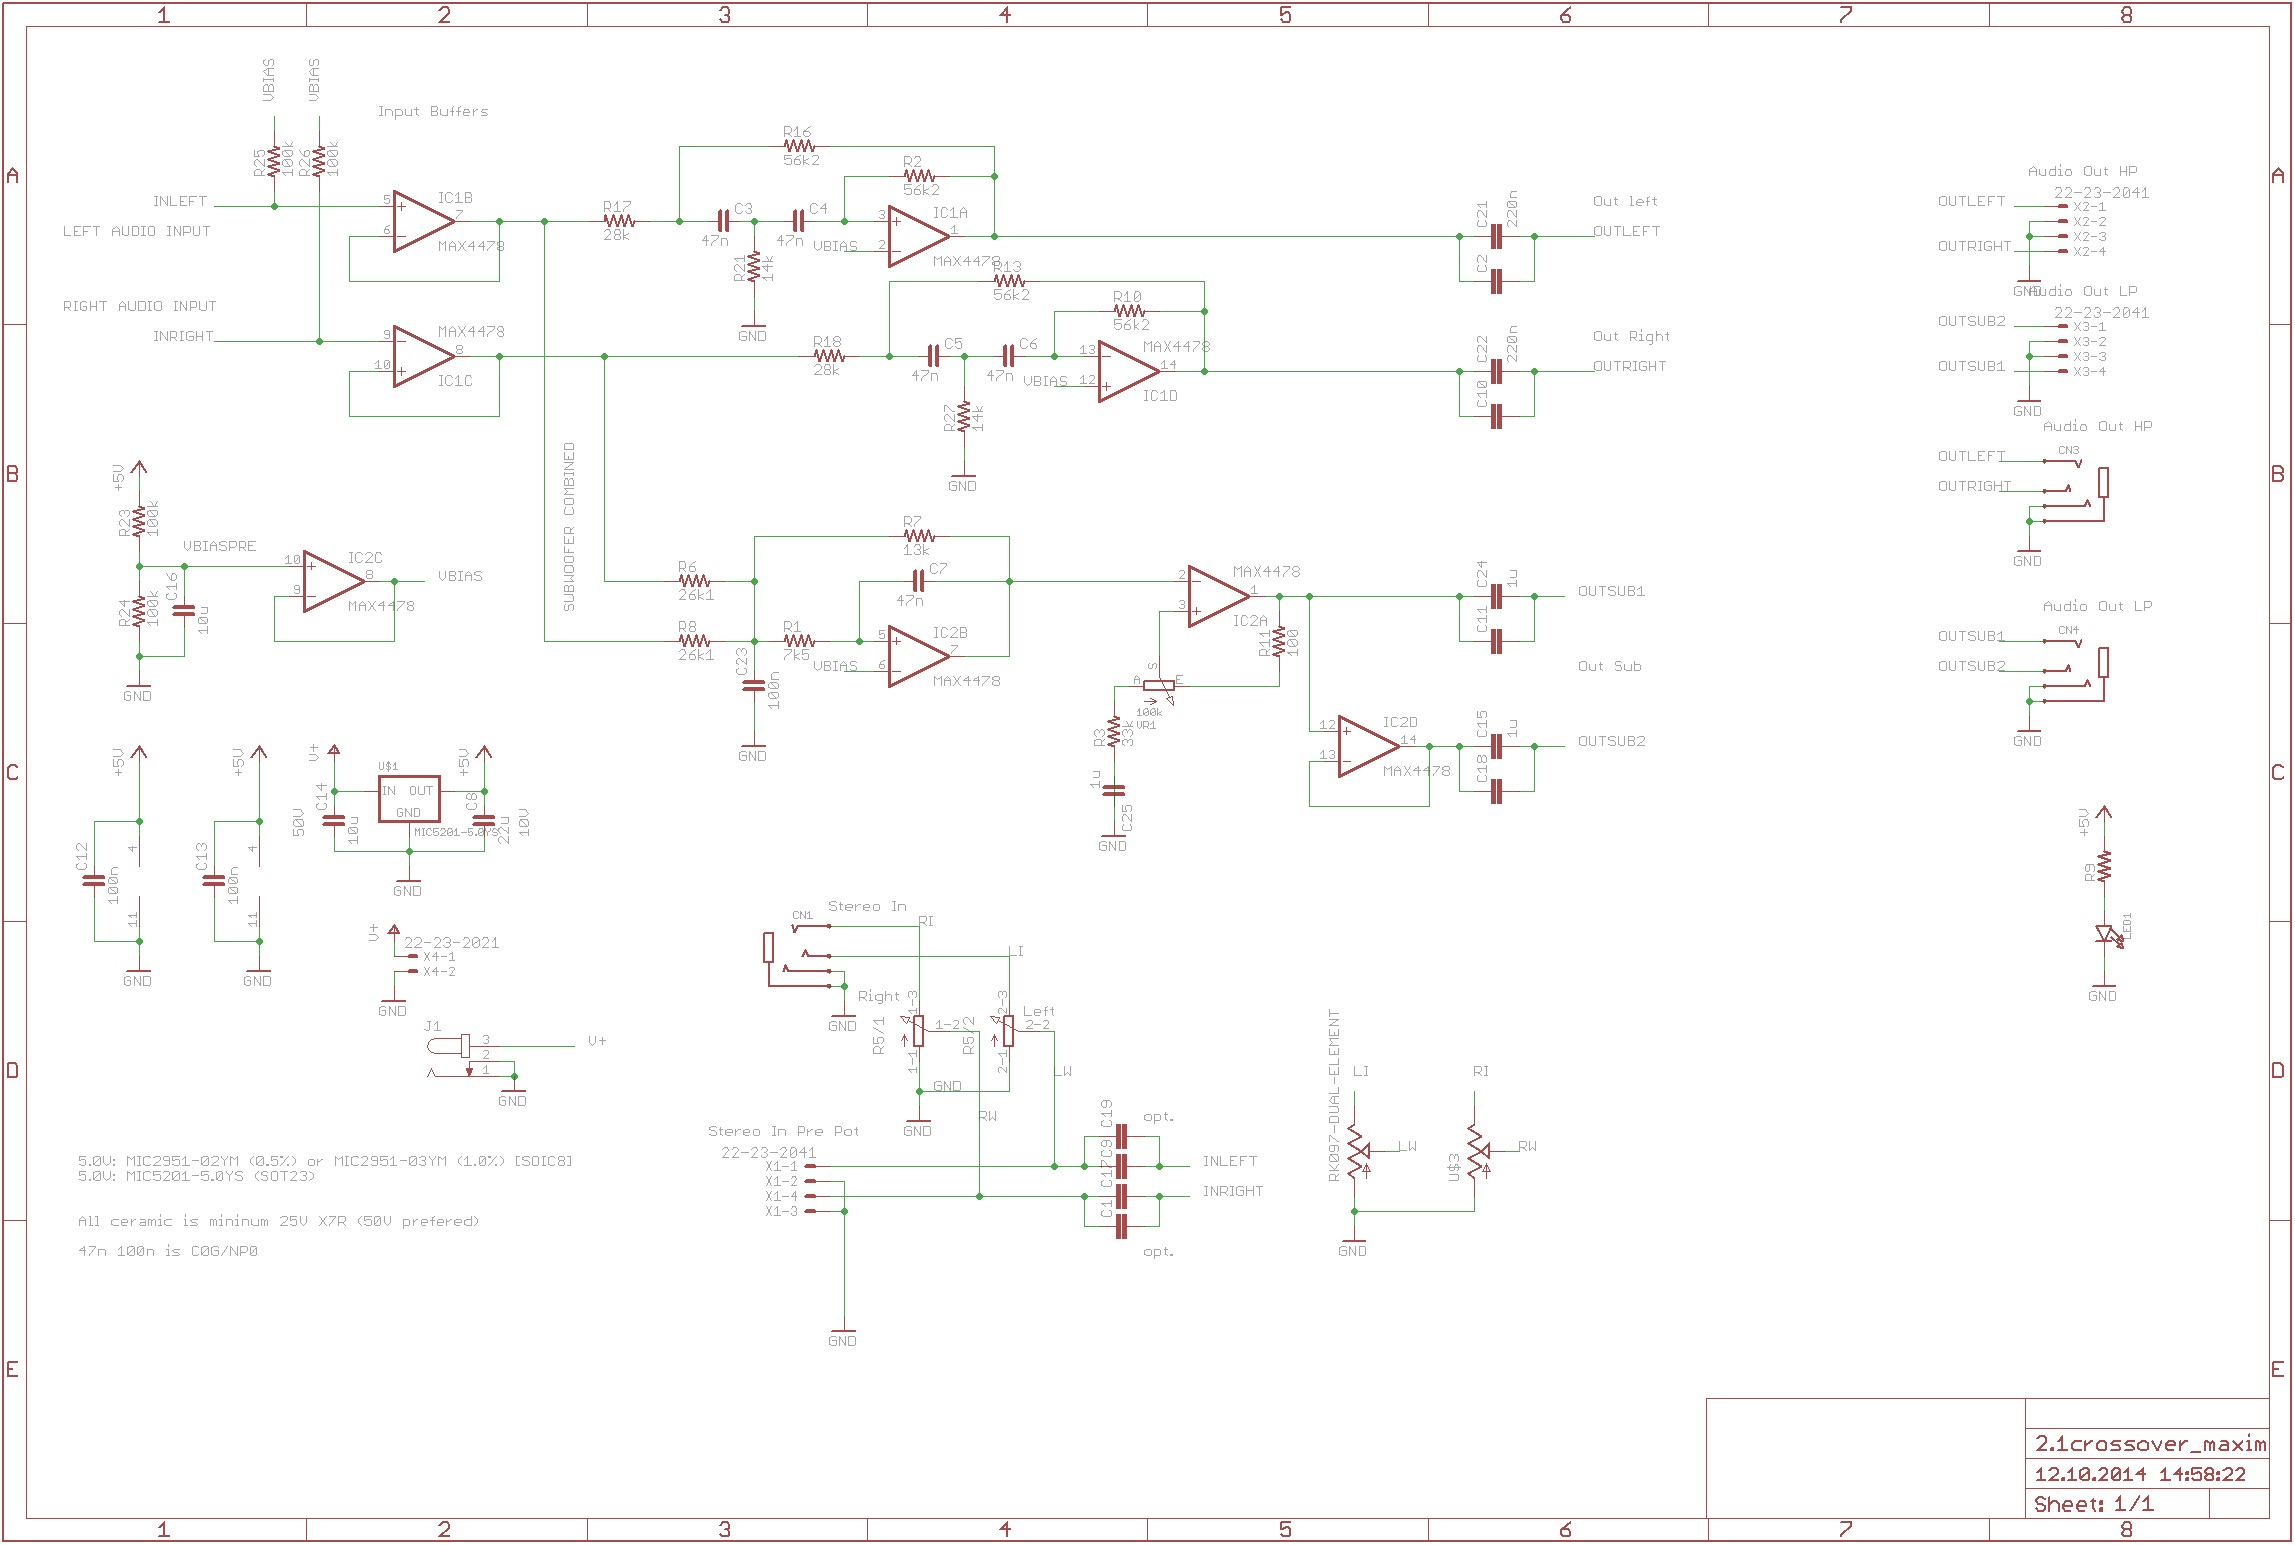 Aktive Crossoverfrequenzweiche Mit Max4478 360customs Crossover Schematic Rev 0d 555 pin diagram industrial electrical